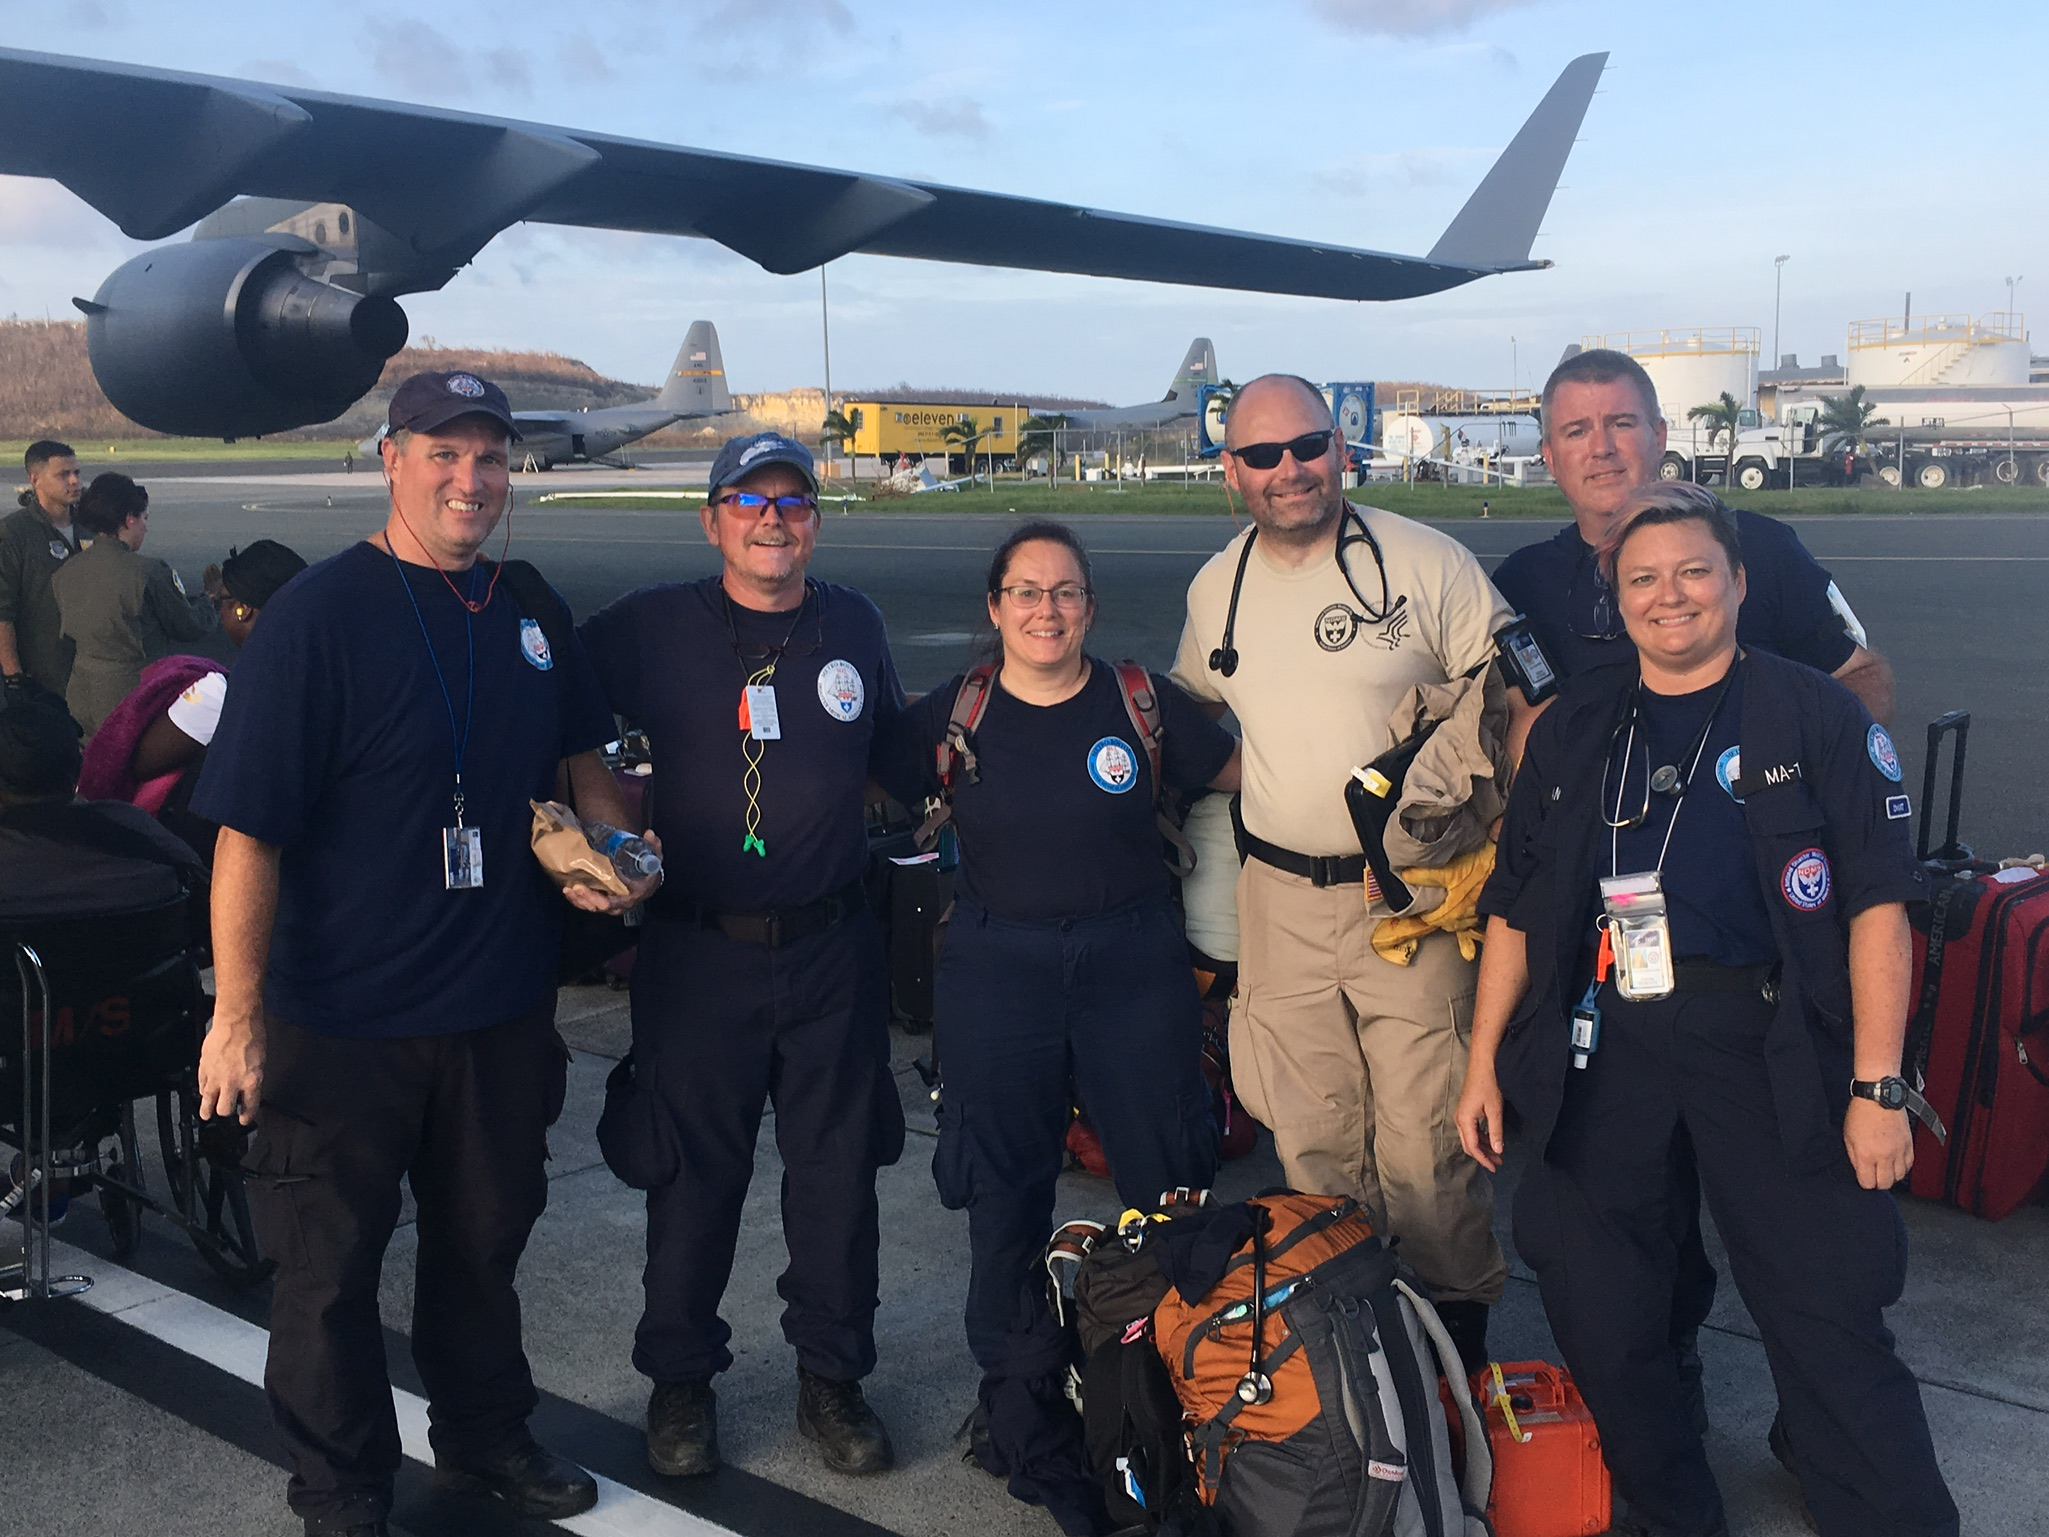 The DMAT (Disaster Medical Assistance Team) strike team sent to St. Croix from the Florida Keys for 24 hours to assist the US Air Force.